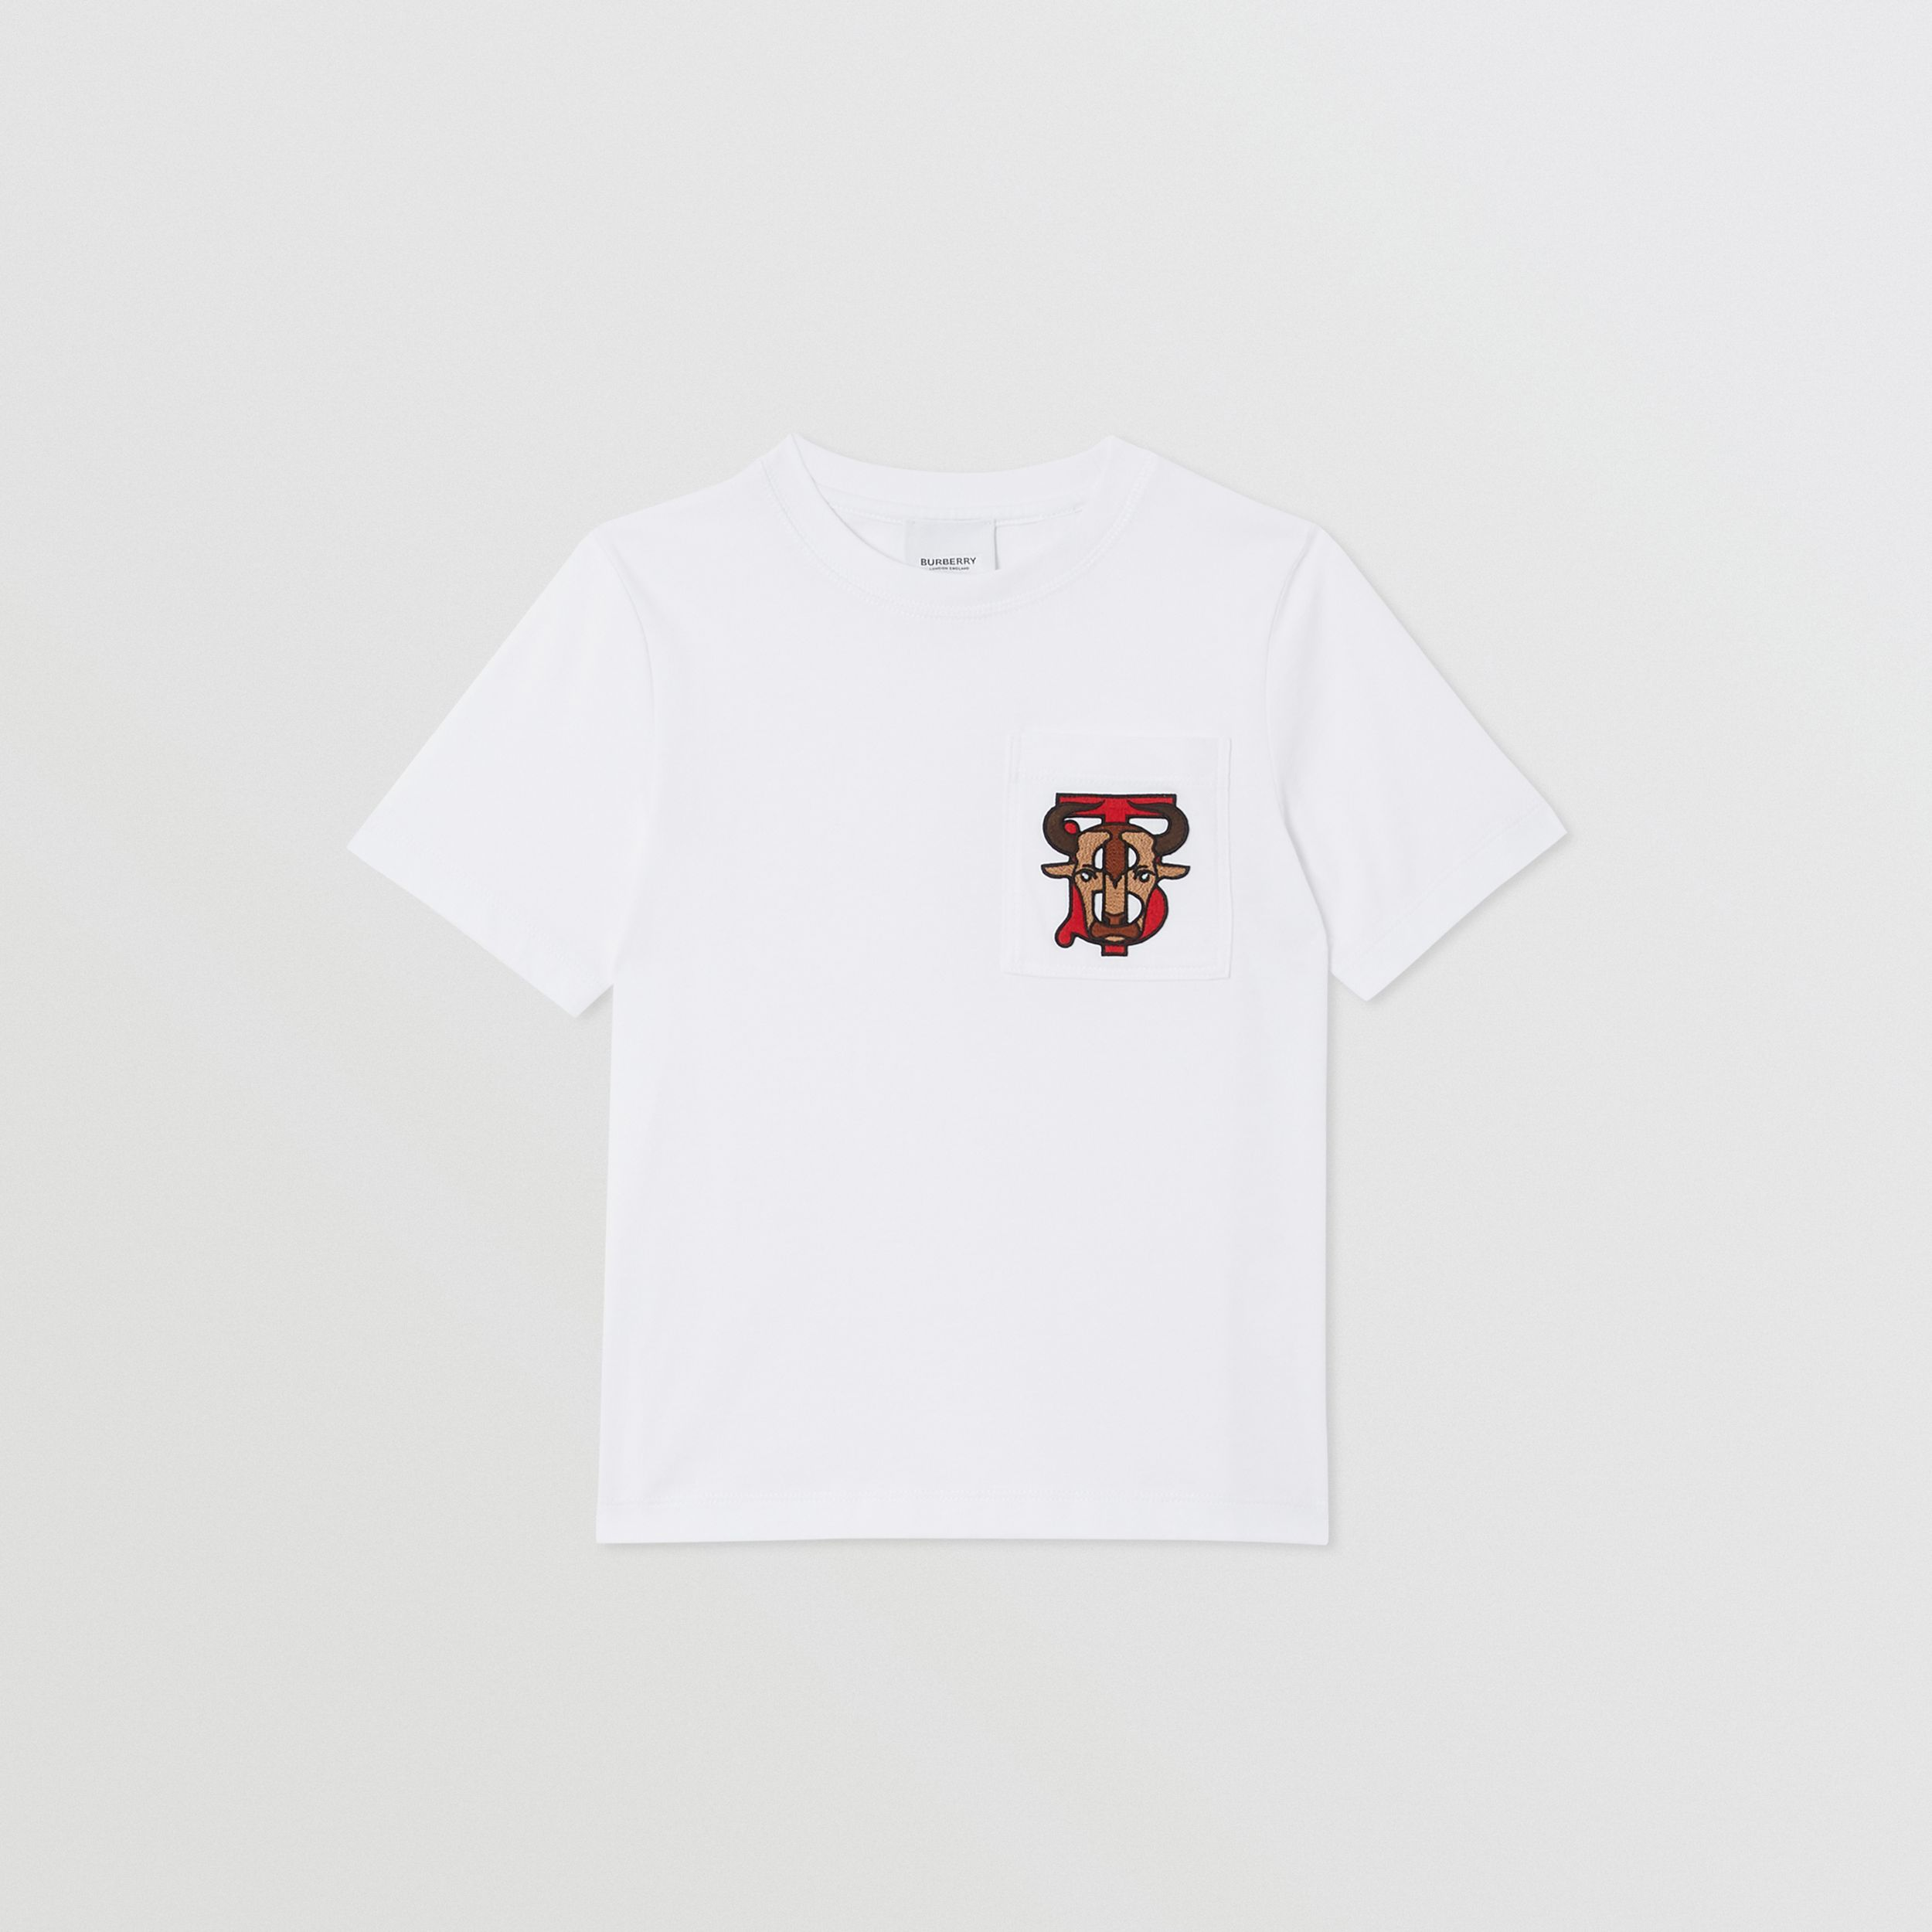 Monogram Motif Cotton T-shirt in White | Burberry Canada - 1